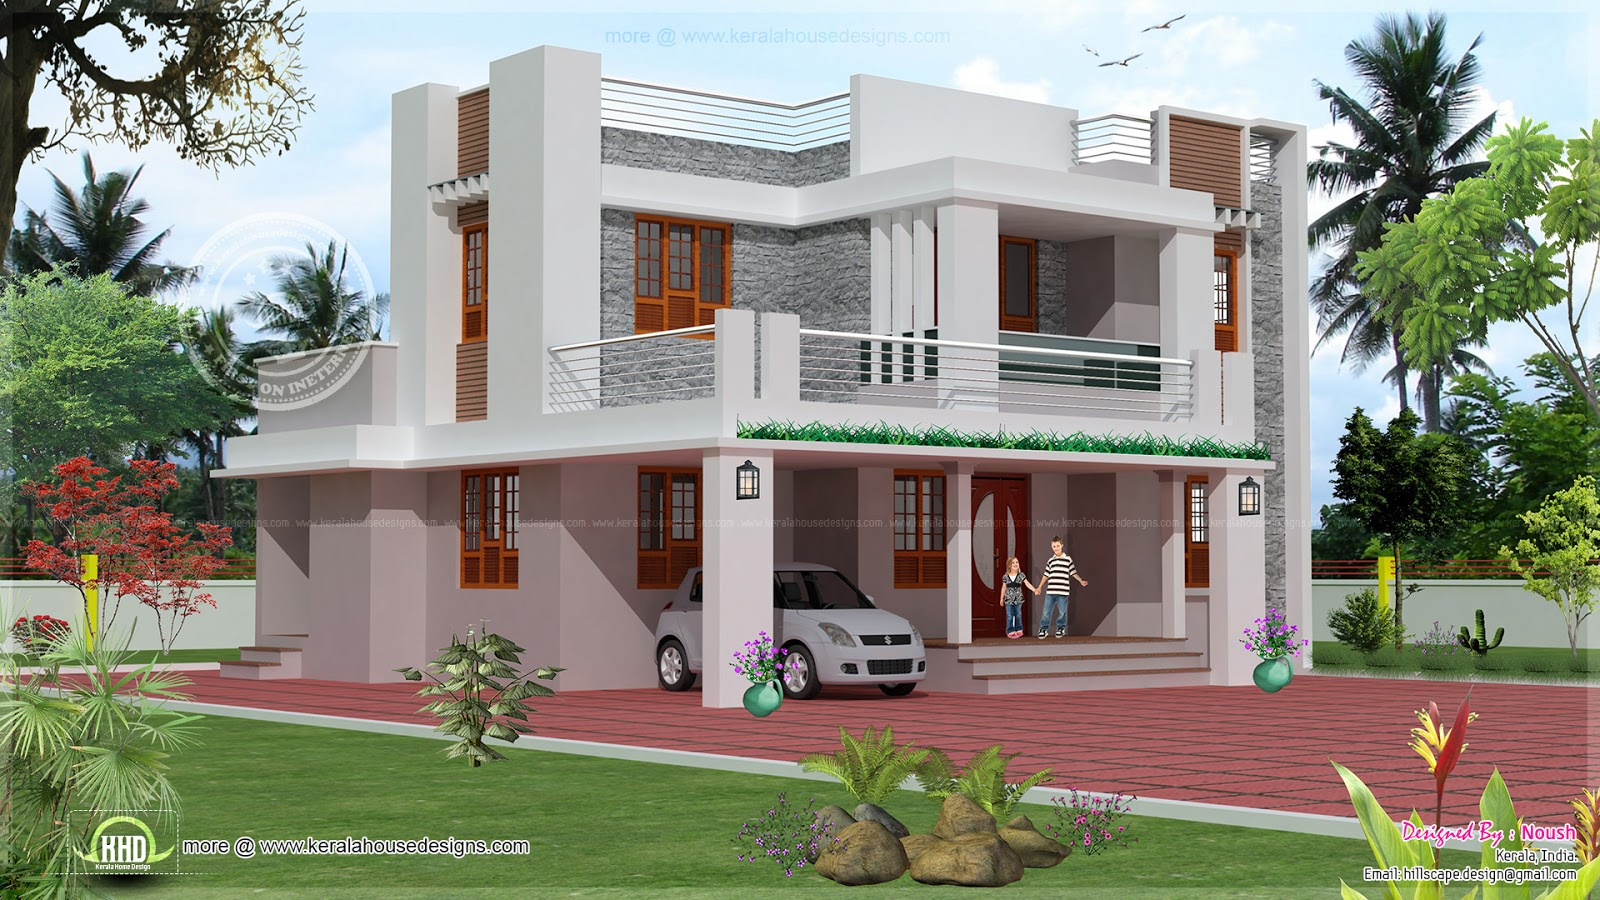 Magnificent Small 2 Story House Designs 1600 x 900 · 418 kB · jpeg